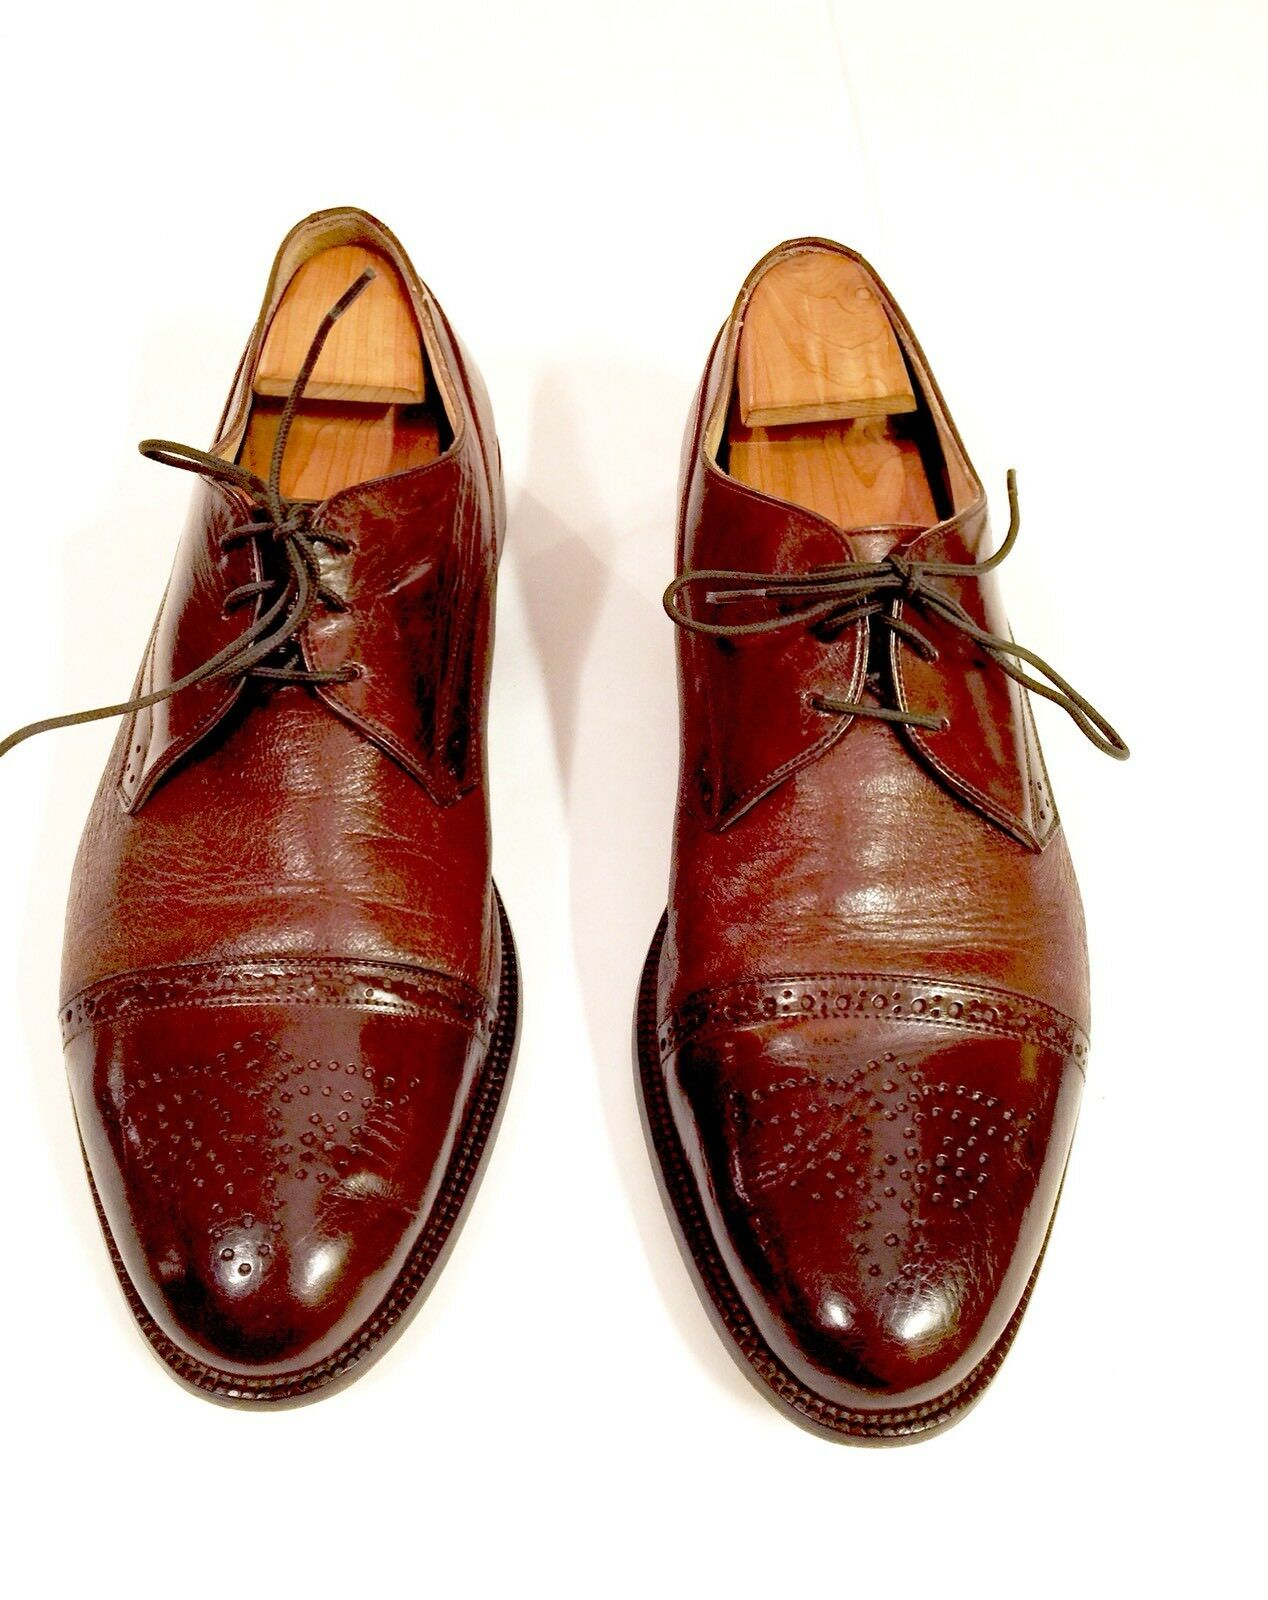 e40c4cd3a4f7 Men s shoes Size 11.5 M Brown Lace Up Made in in in Johnston Murphy Oxford  shoes ...